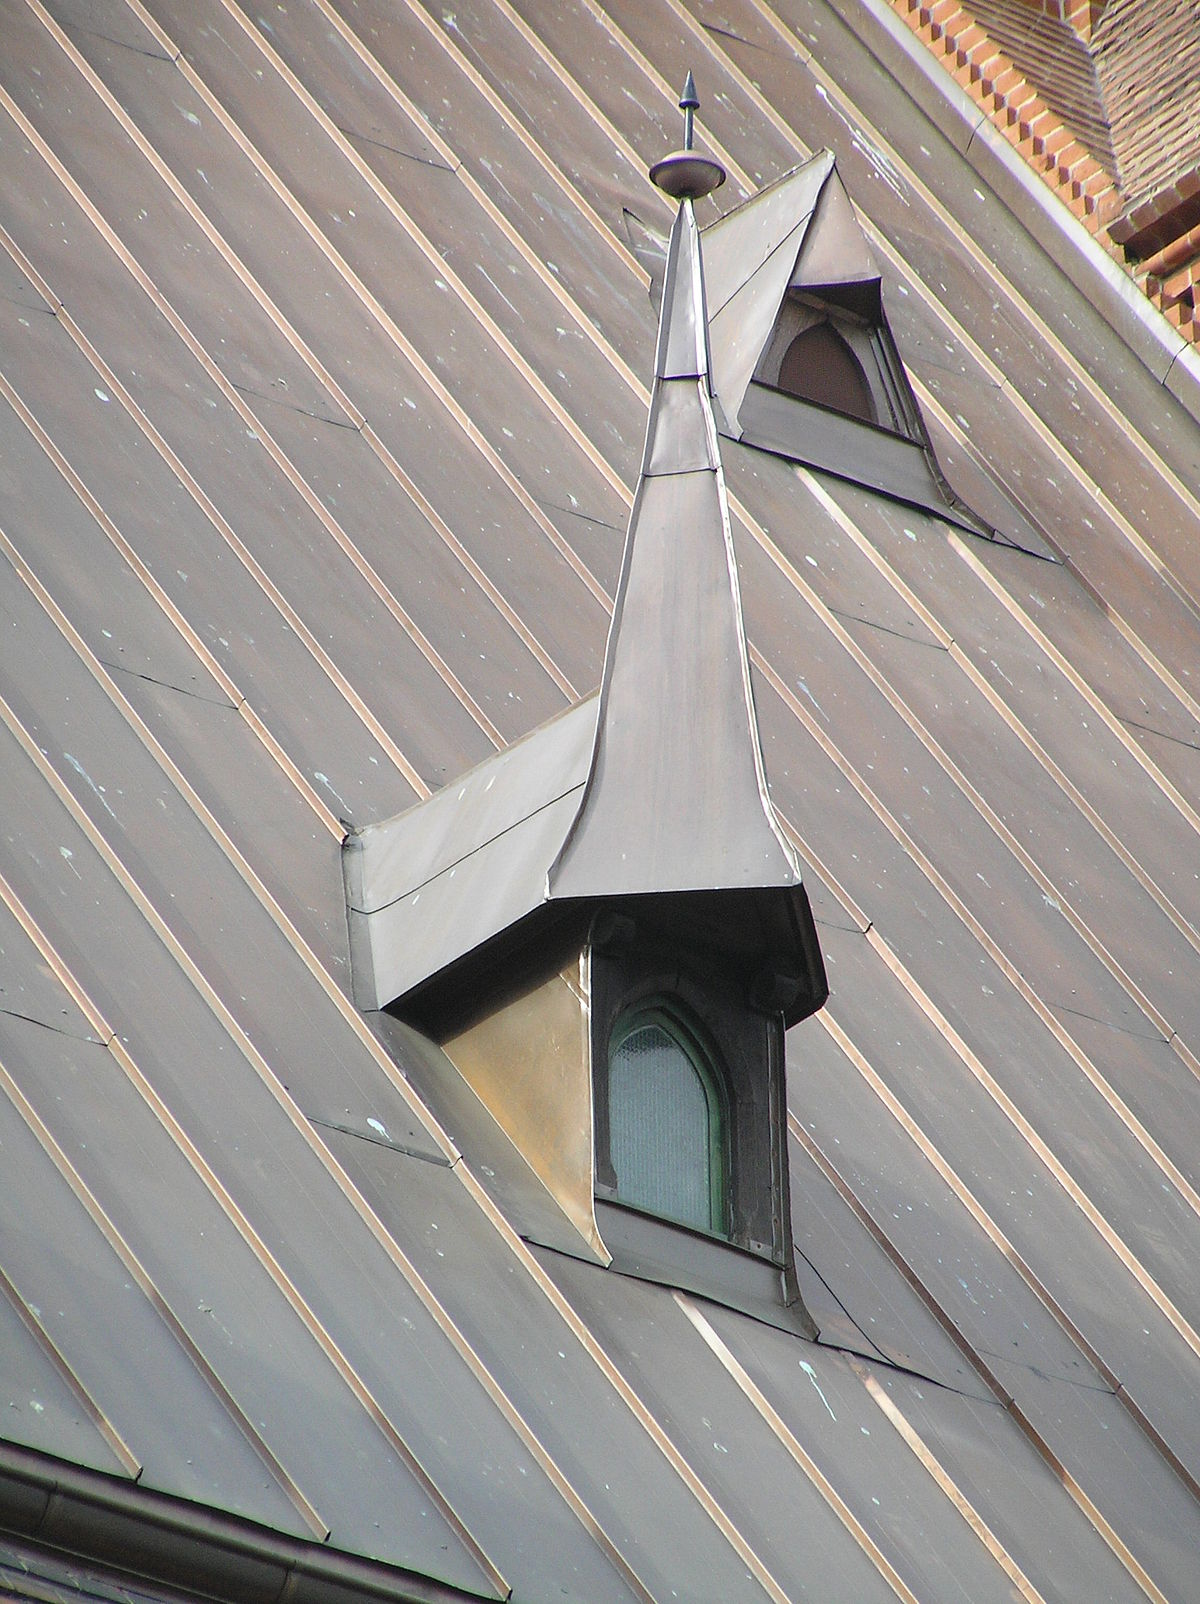 Metal Roof Wikipedia